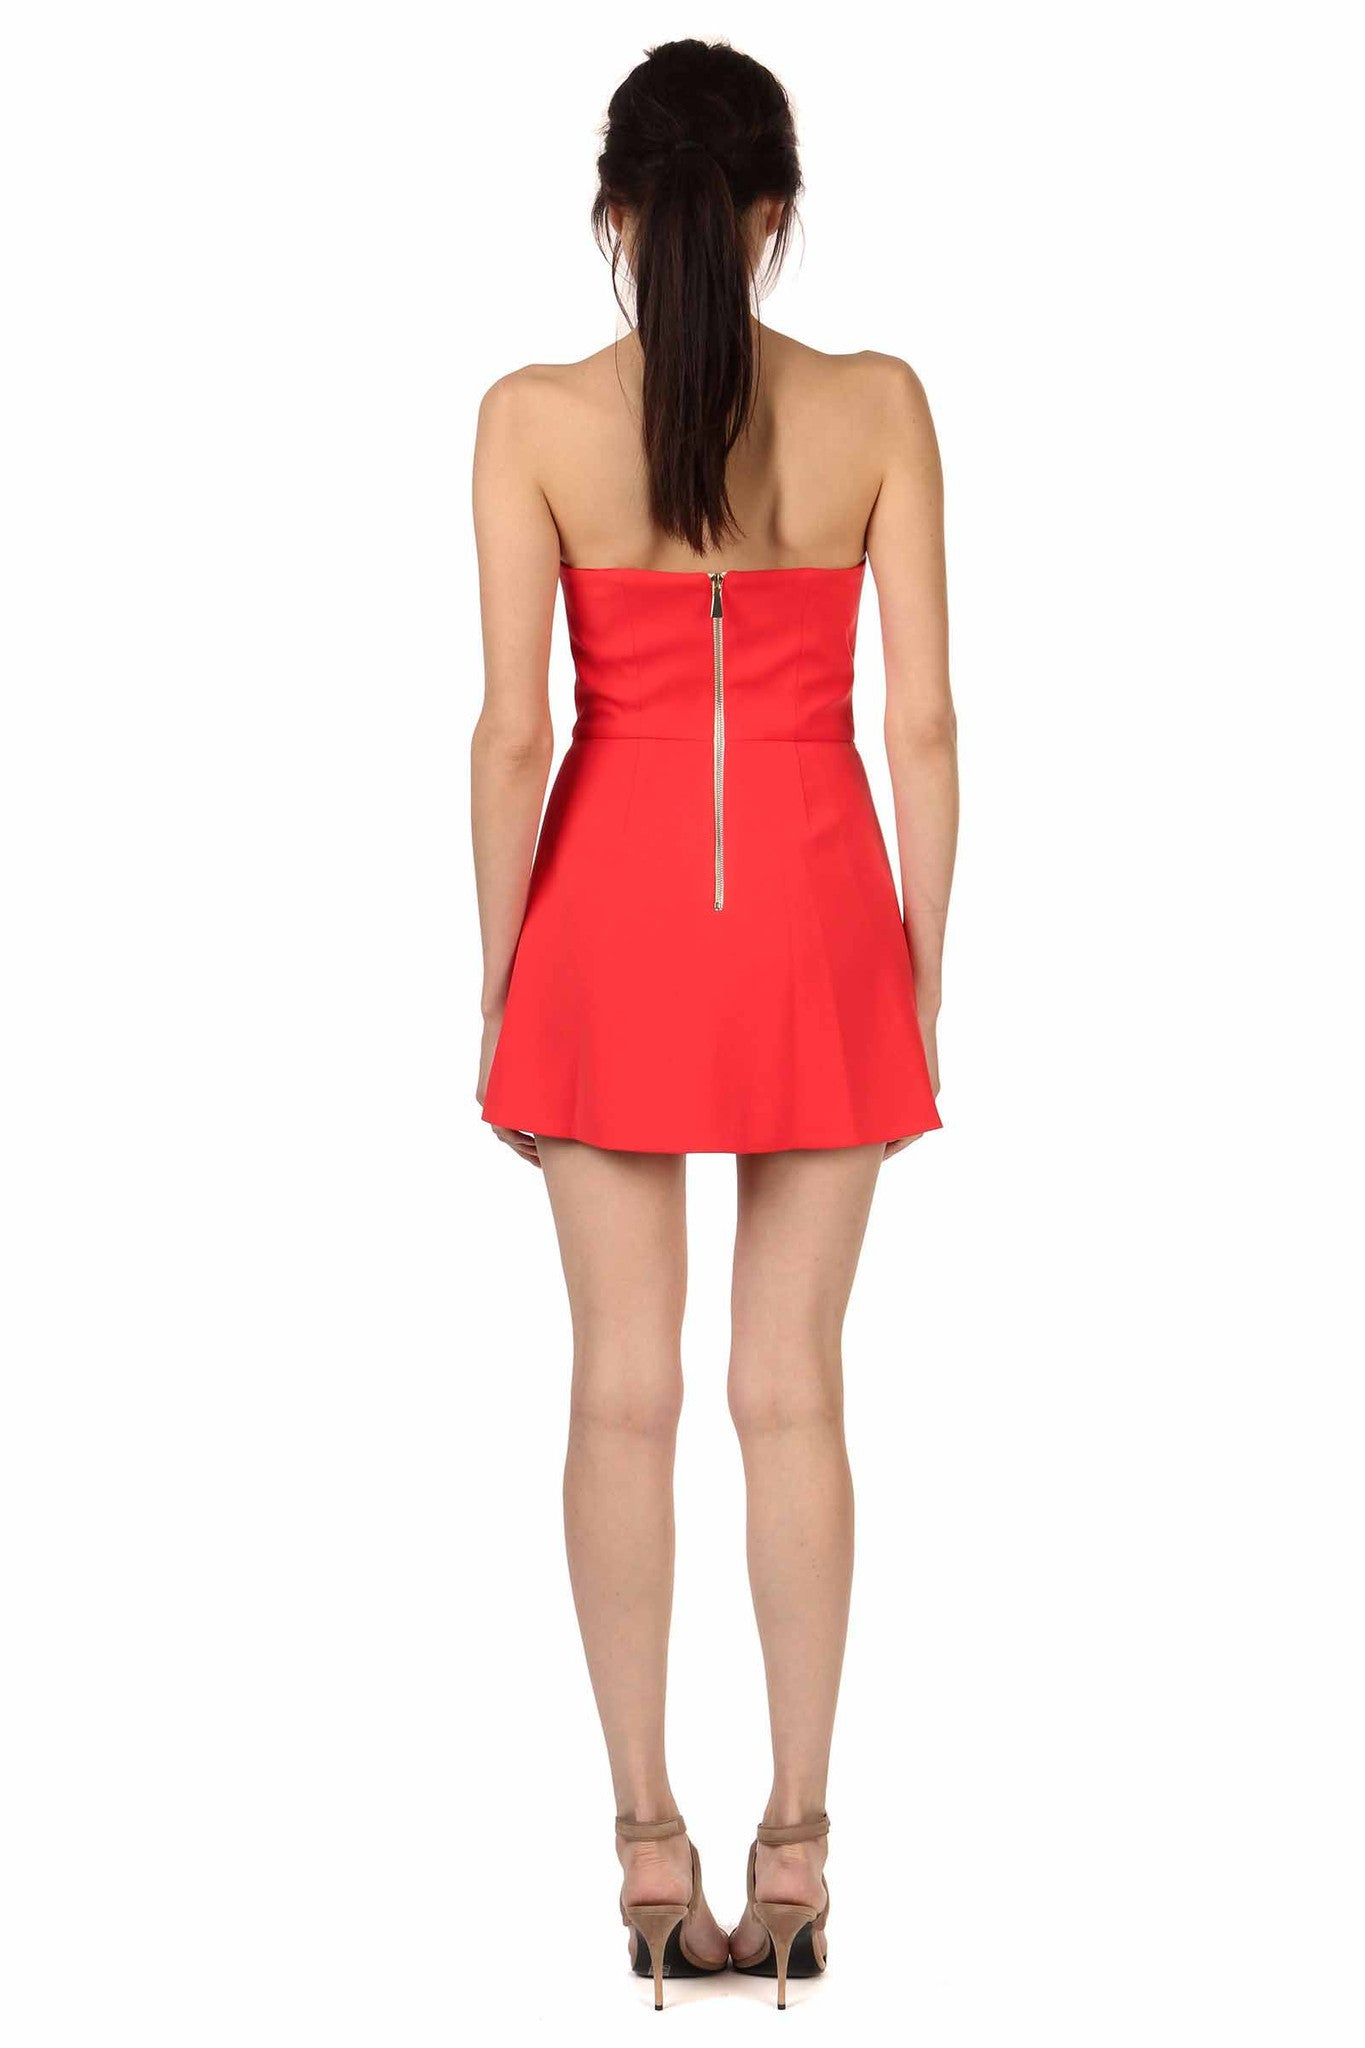 Jay Godfrey Red Strapless Romper - Back View